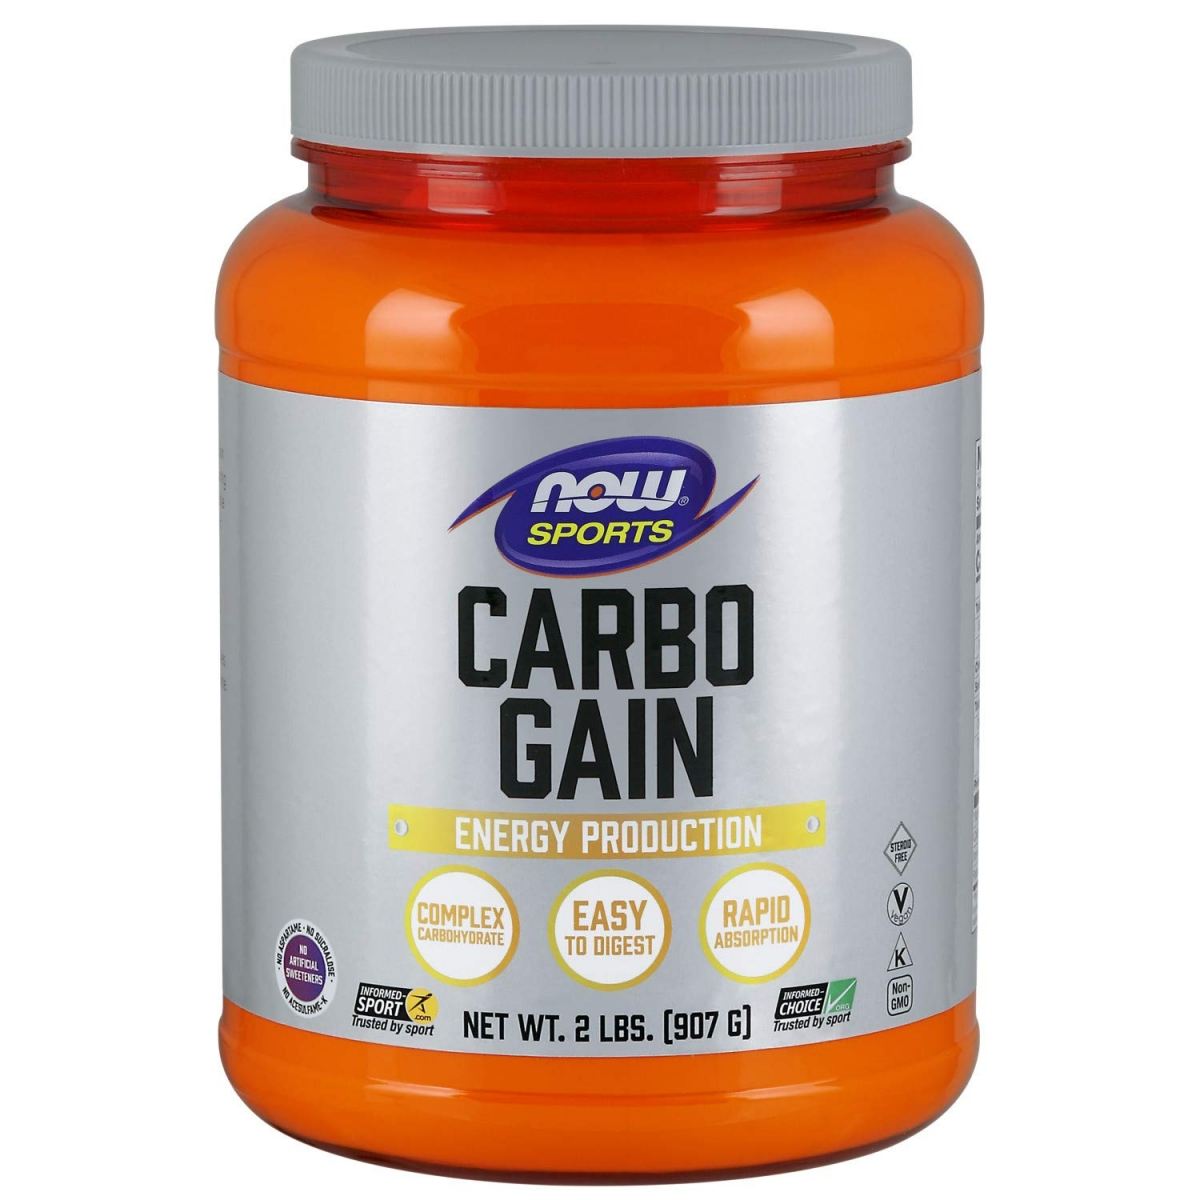 NOW Carbo Gain Complex Carbohydrate 908g